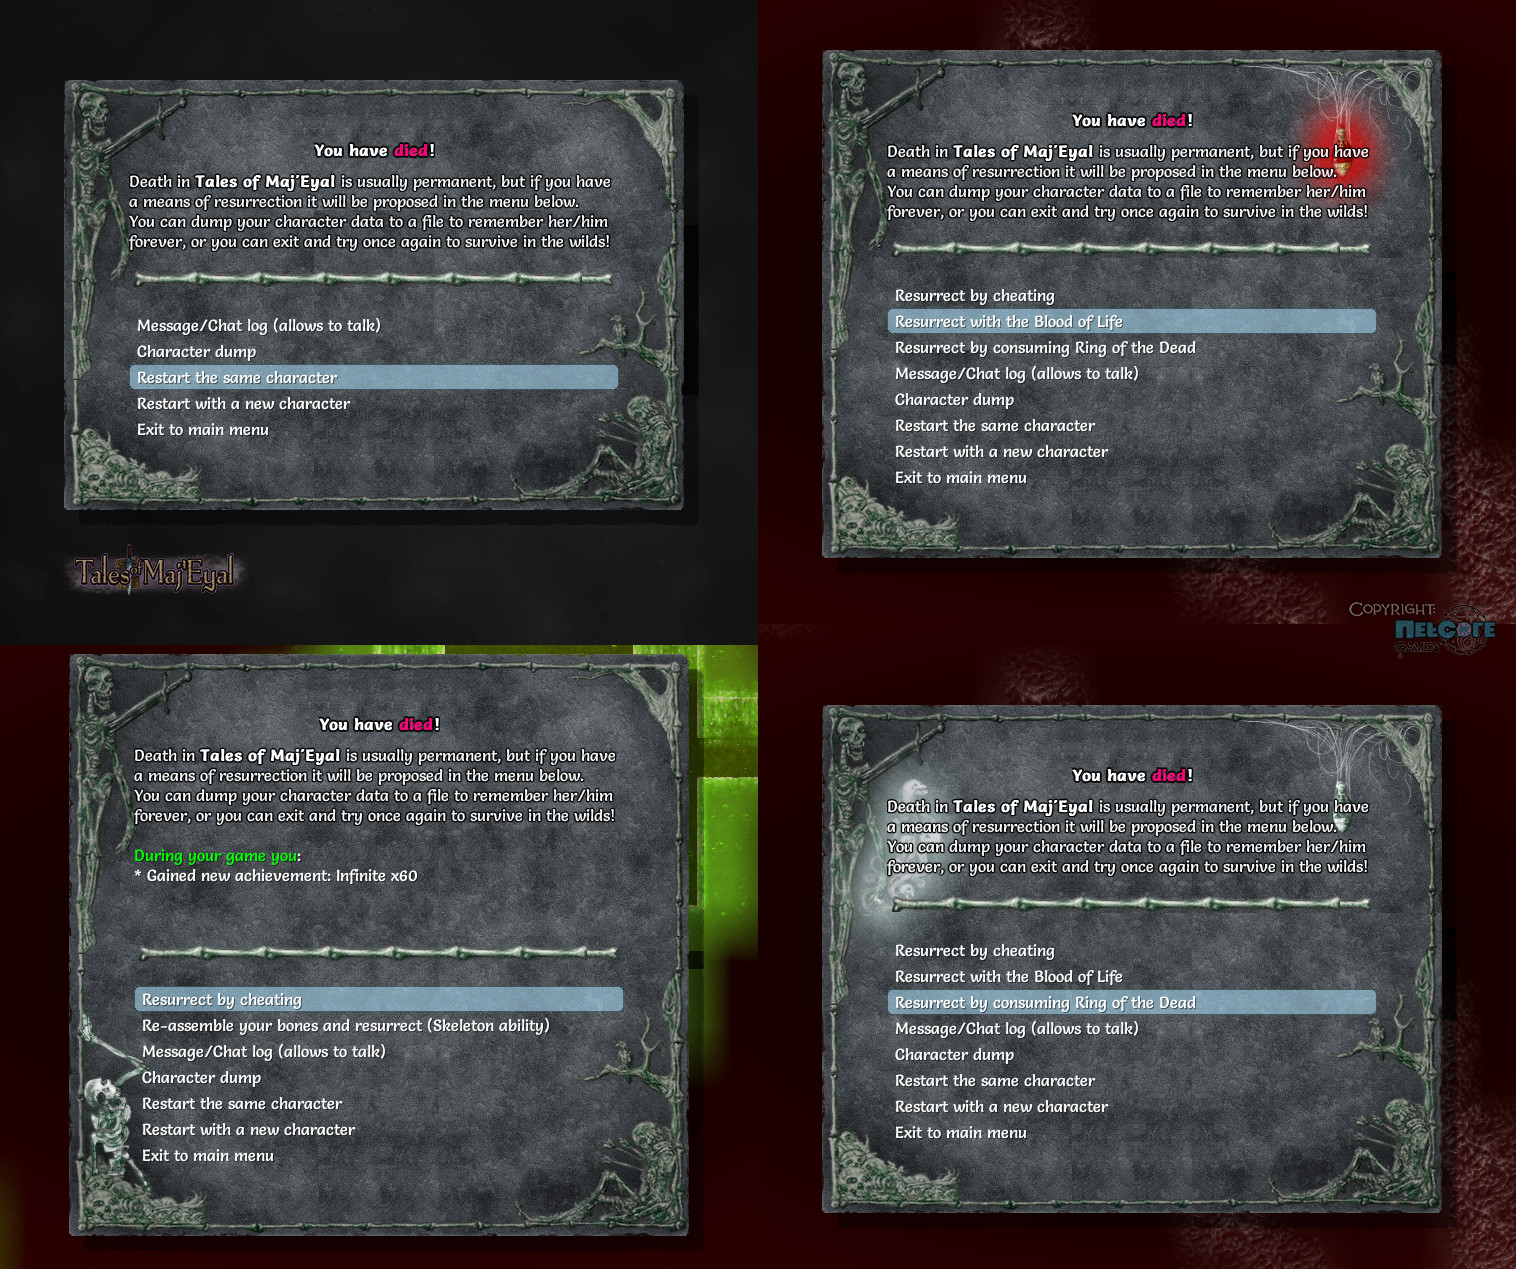 Ingame - normal and with the resurerction options available